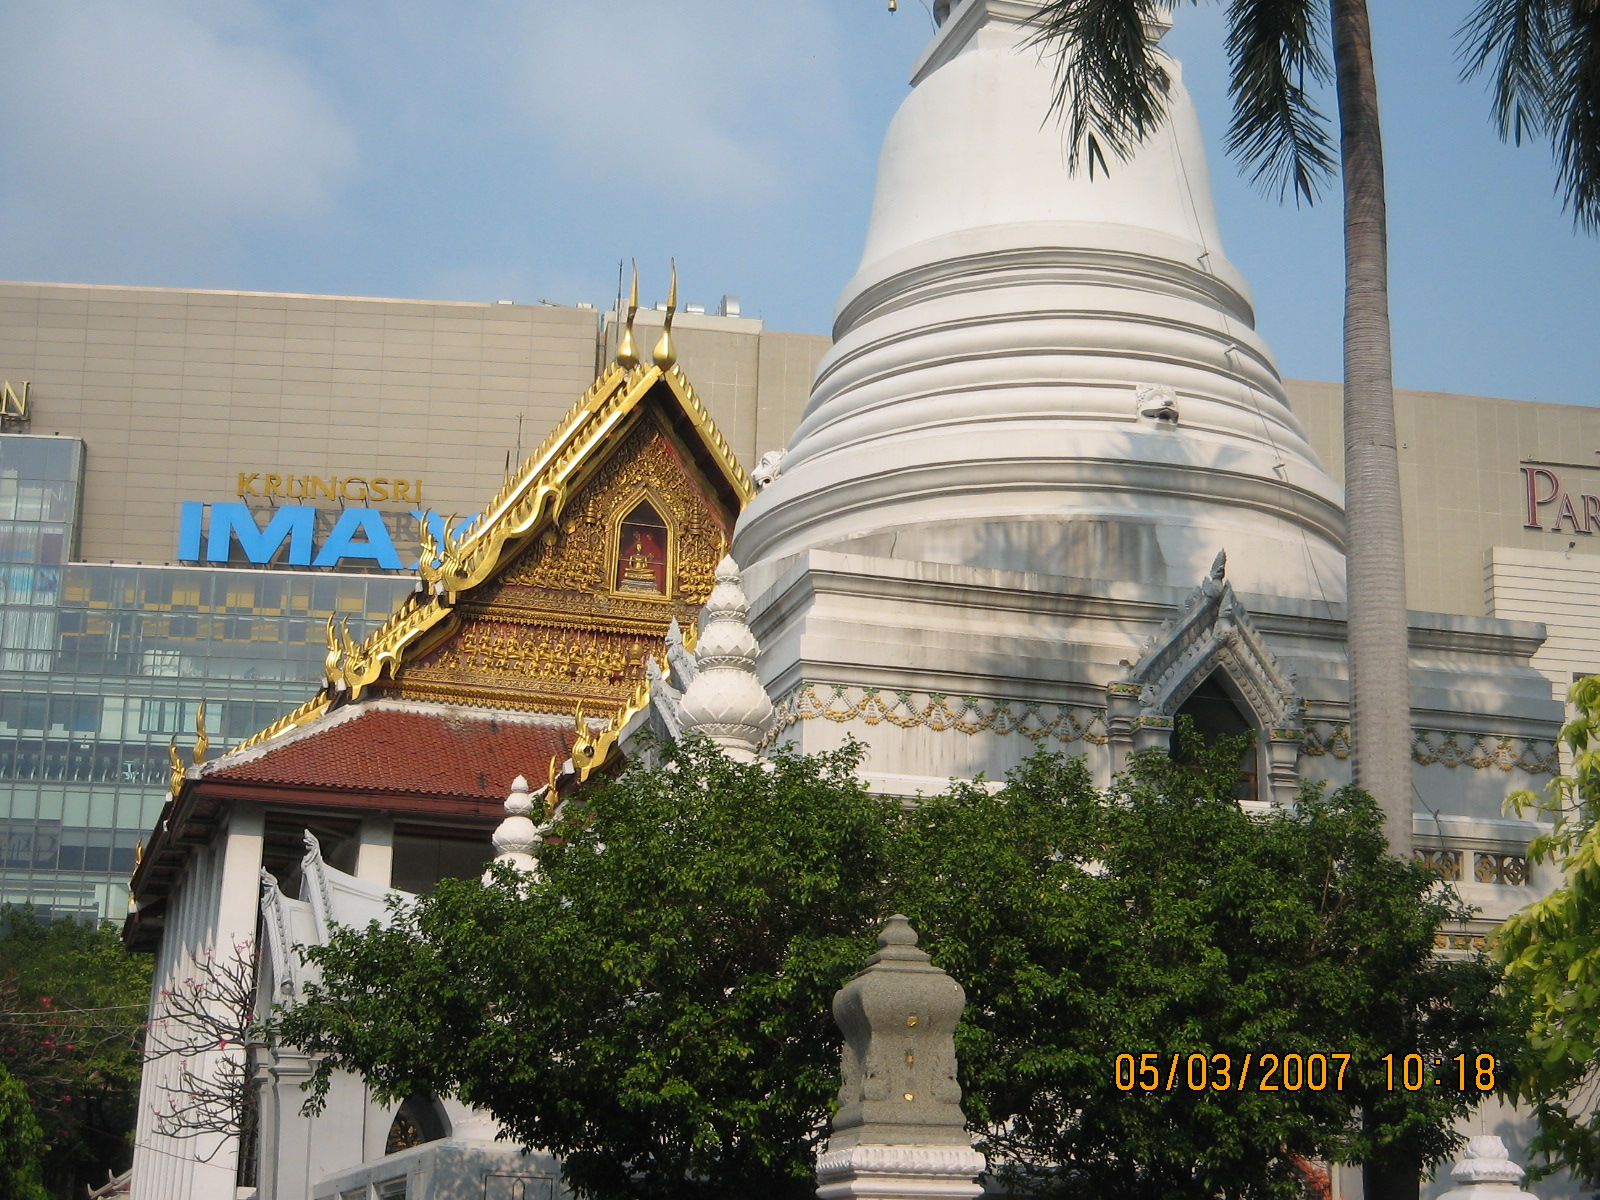 Wat Patun Waranam วัดปทุมวนาราม or Wat Sapatum - located between Siam Paragon and Central World